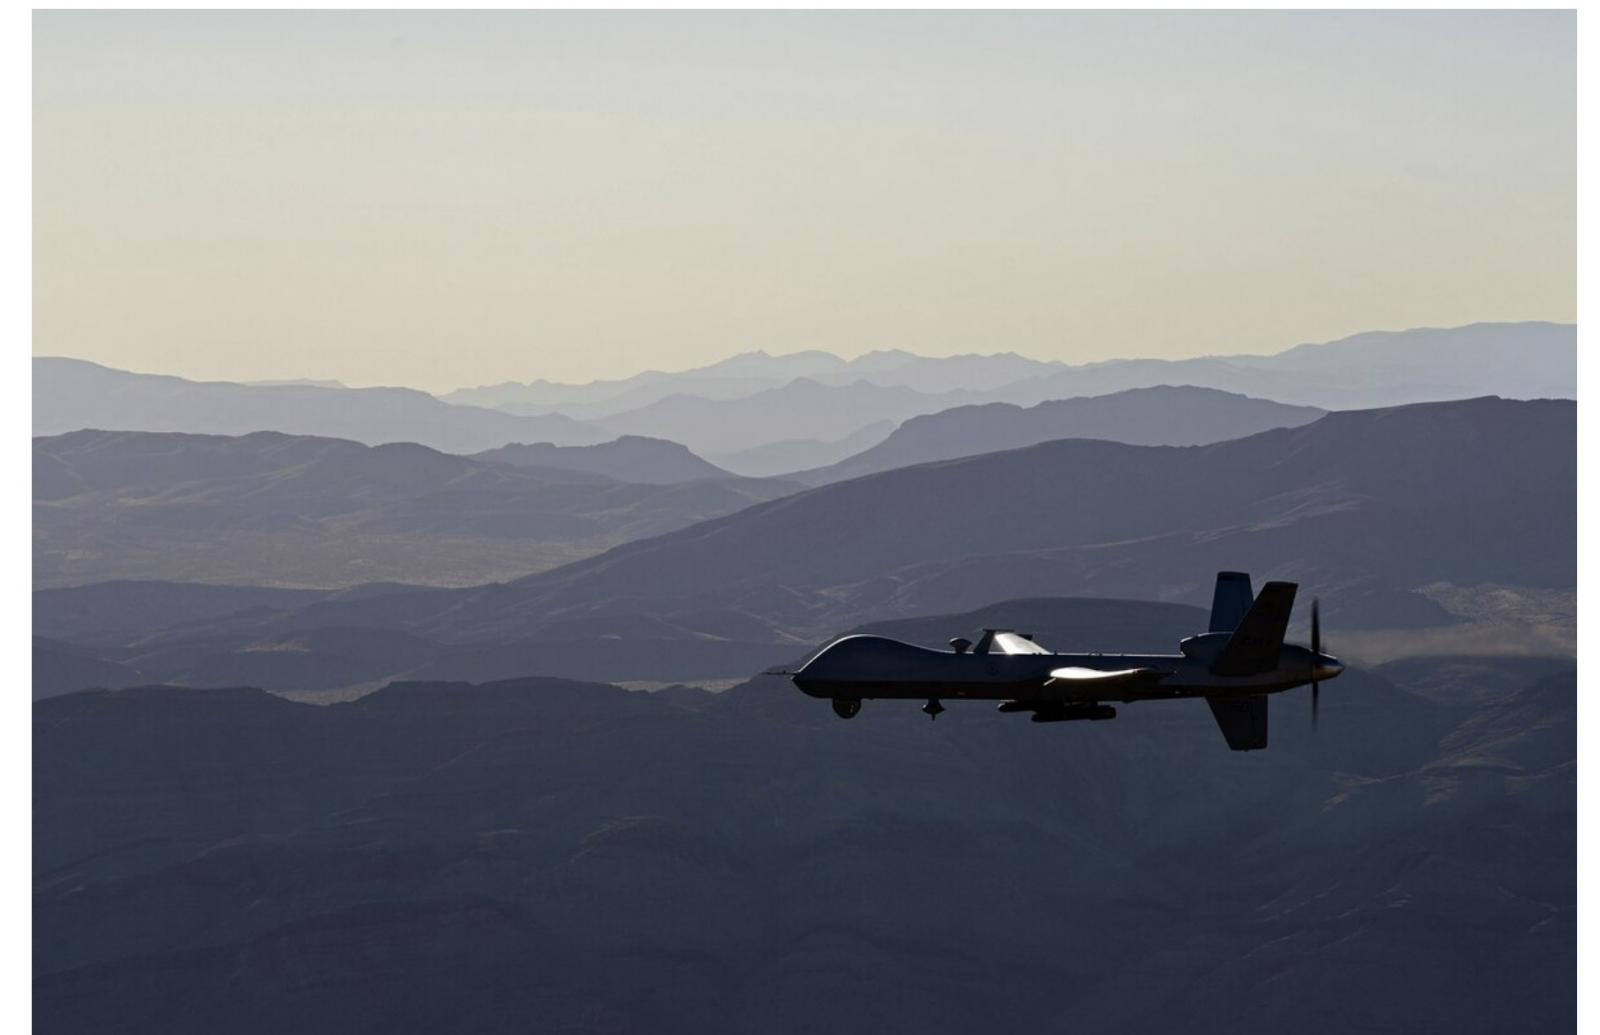 Air Force wasted $17M on unneeded, never-delivered weather sensors for Reaper drone, IG finds